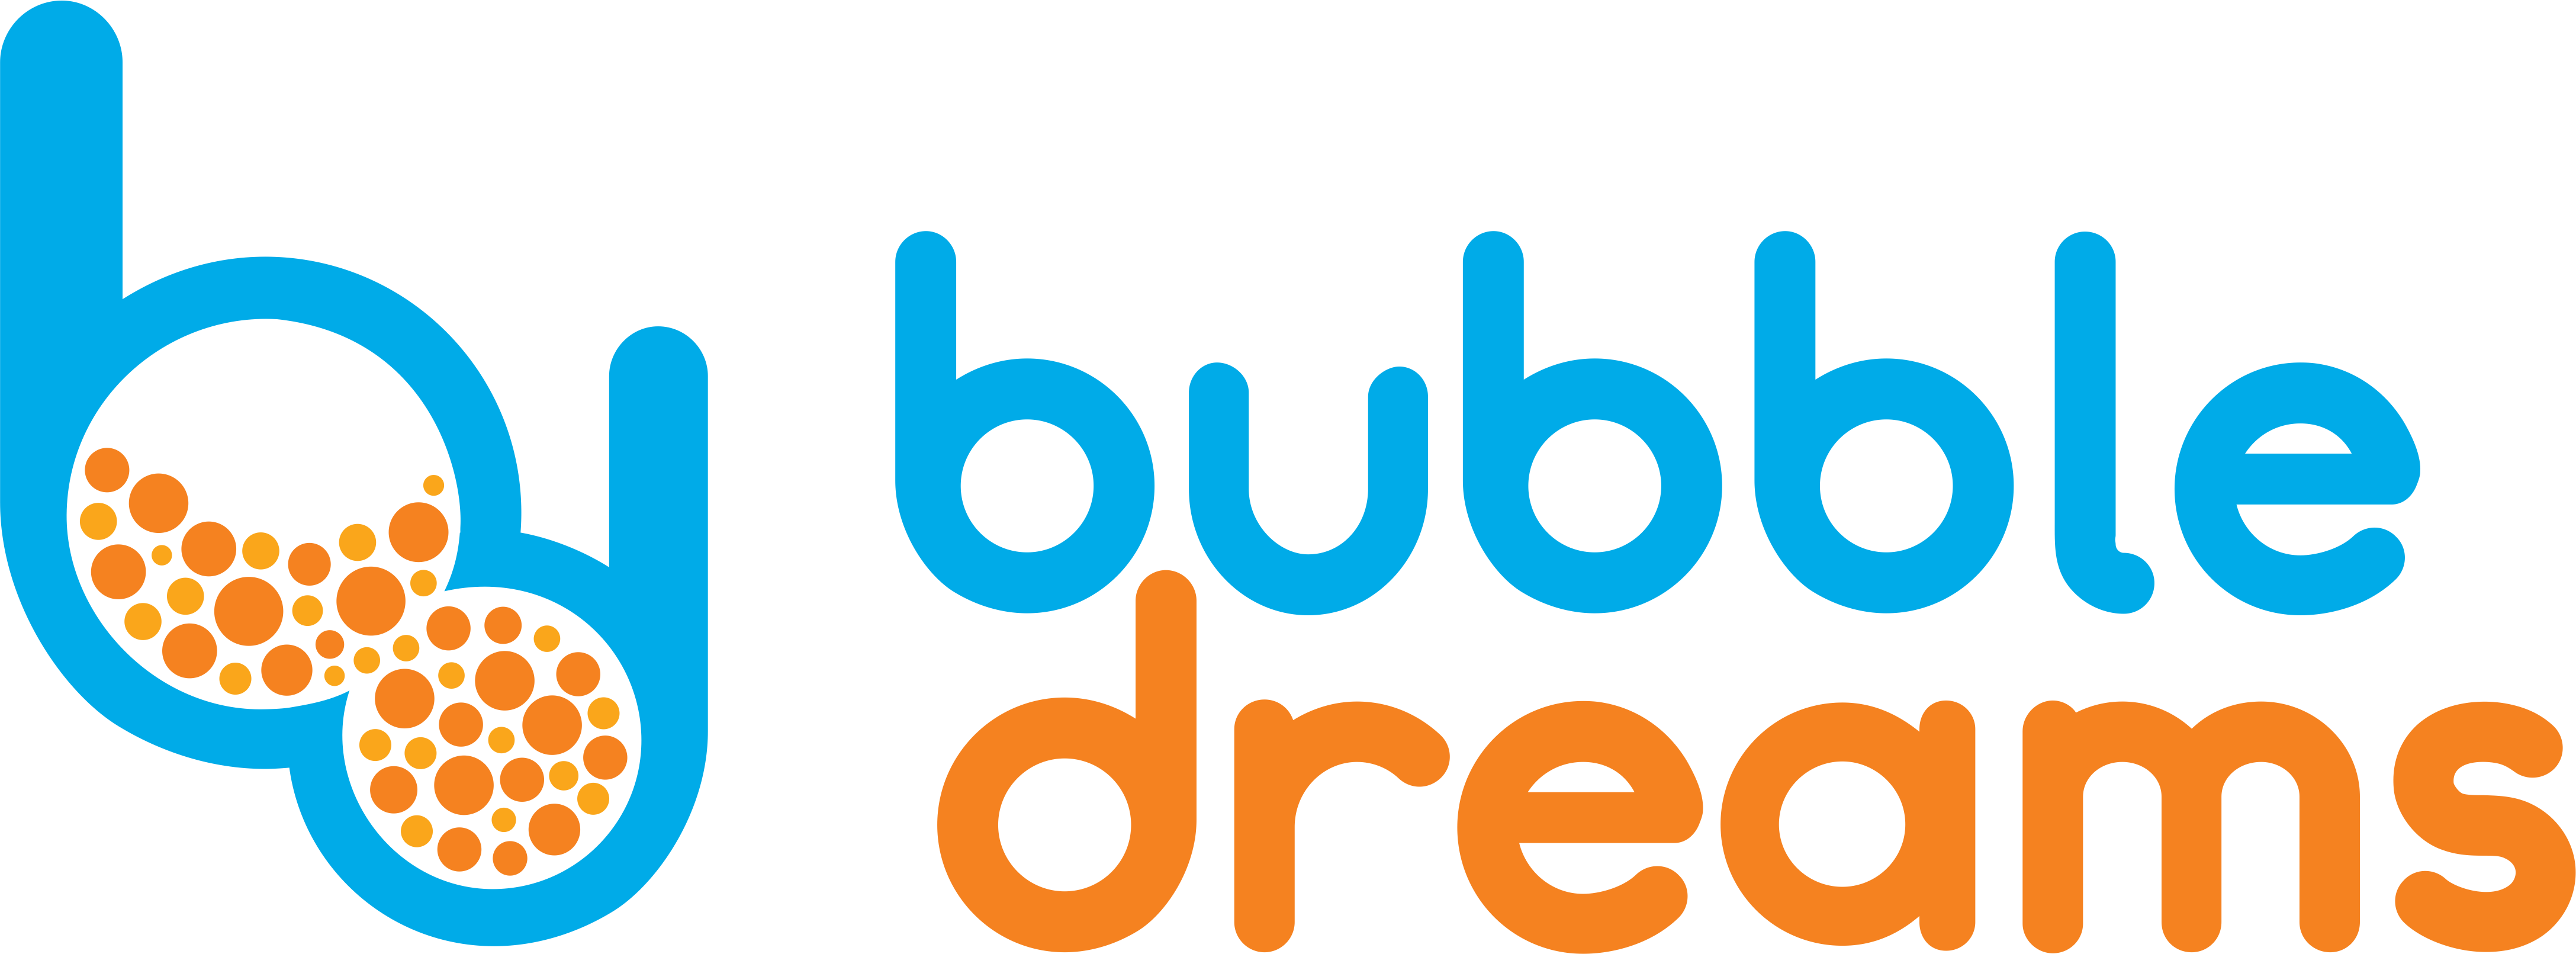 Bubble Dreams - Первый сухой бассейн в Санкт-Петербурге